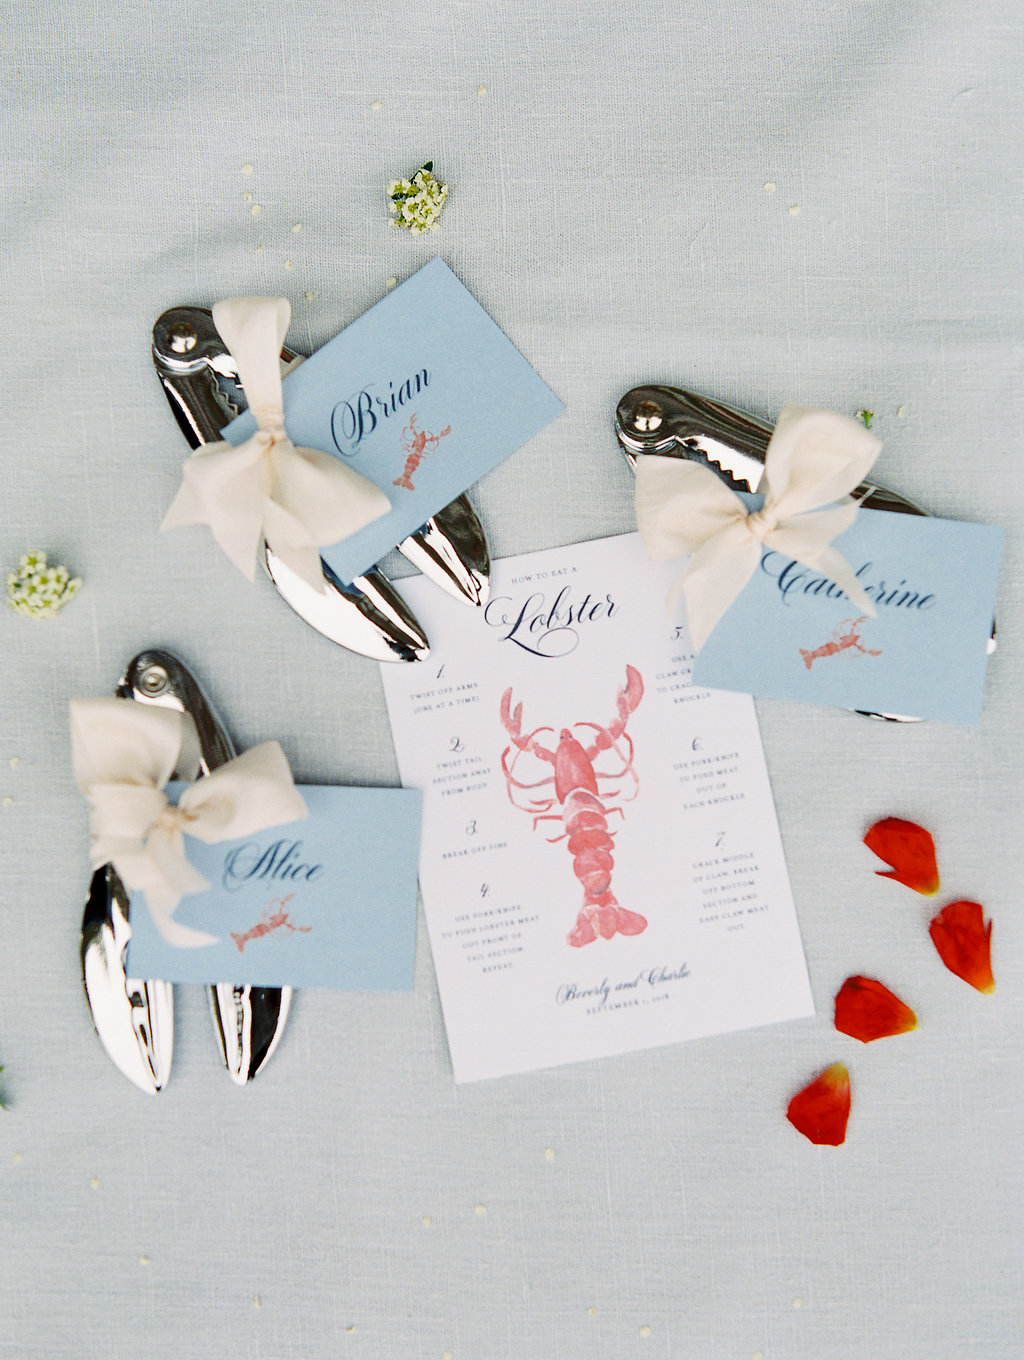 Lobster cracker card and tools